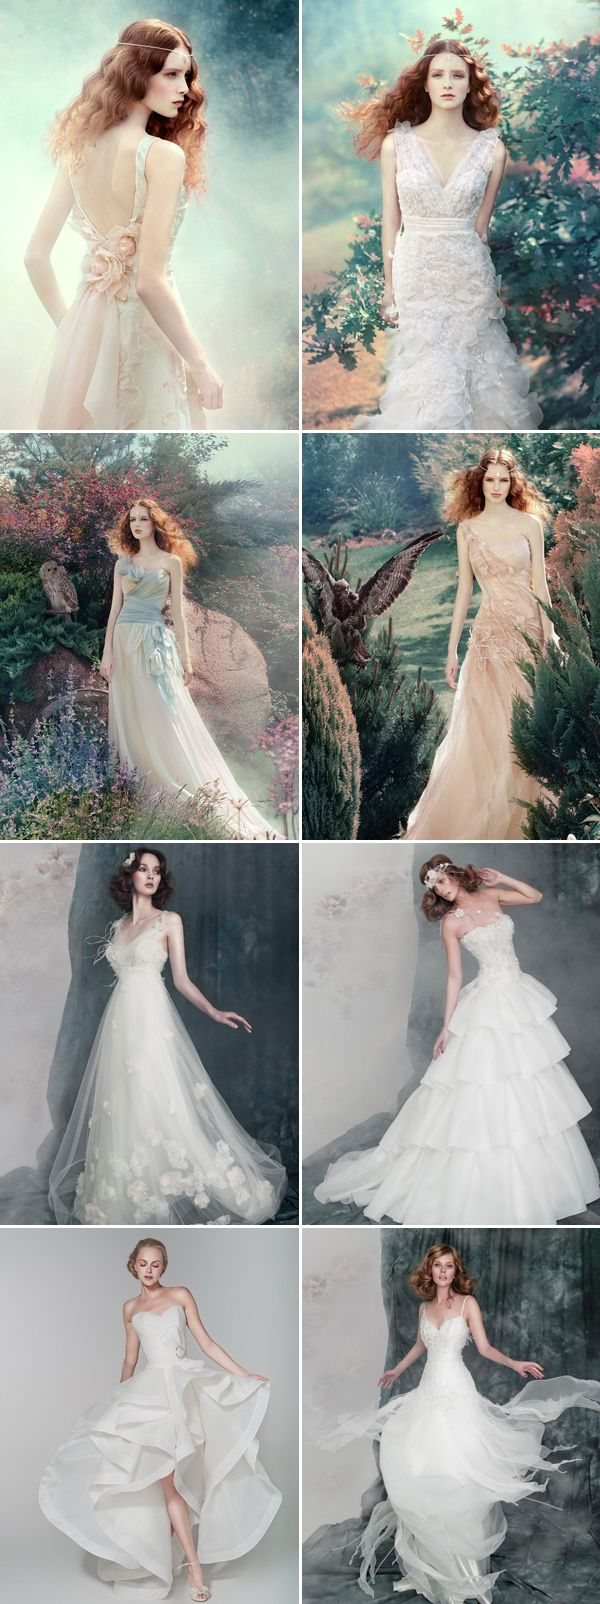 Best 25 whimsical wedding dresses ideas on pinterest for Romantic ethereal wedding dresses